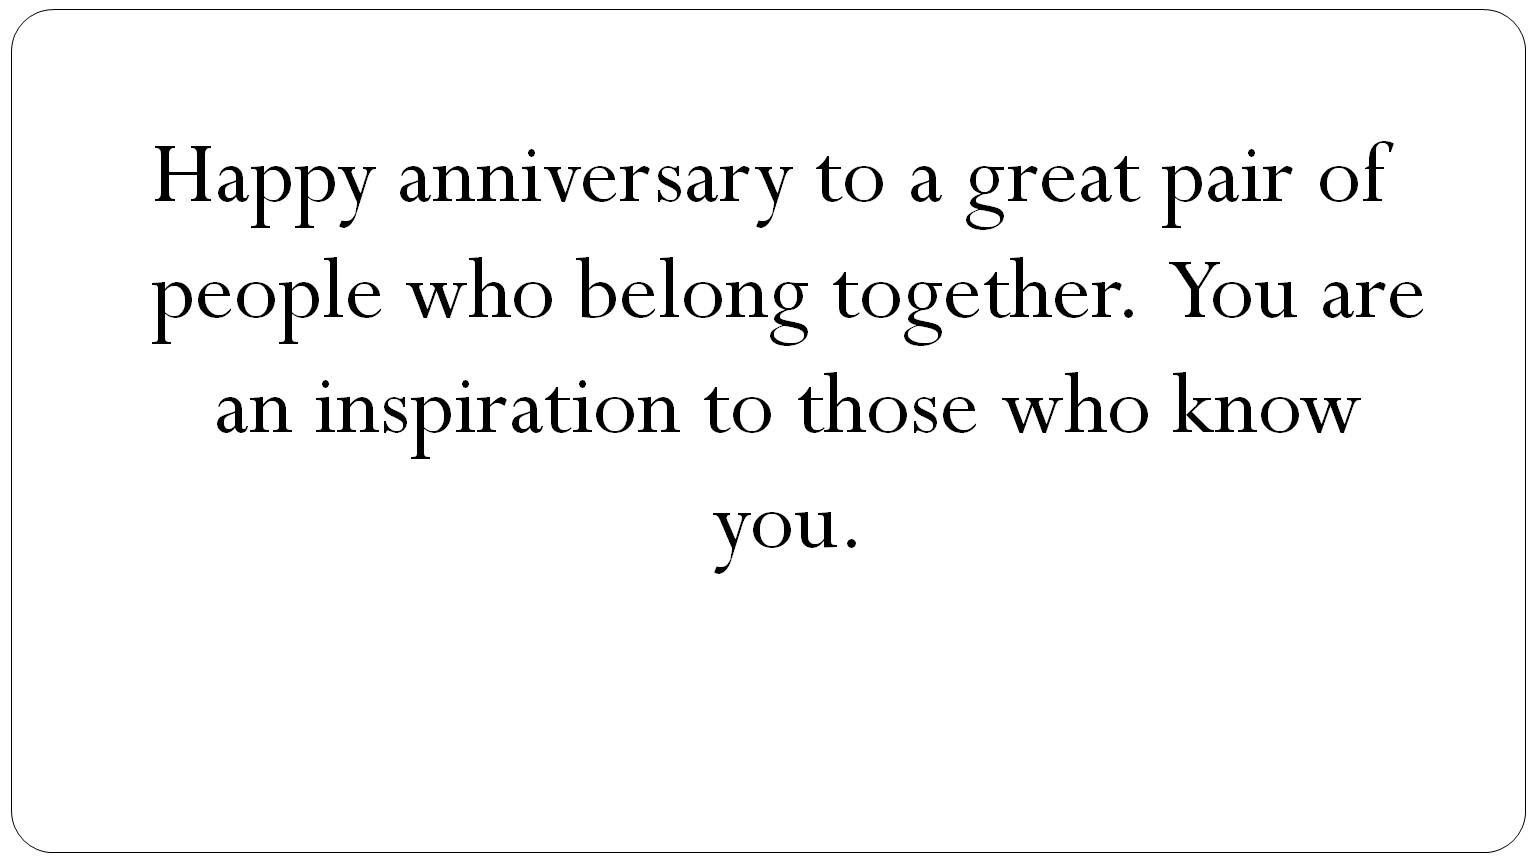 quotes about anniversary of parents quotes